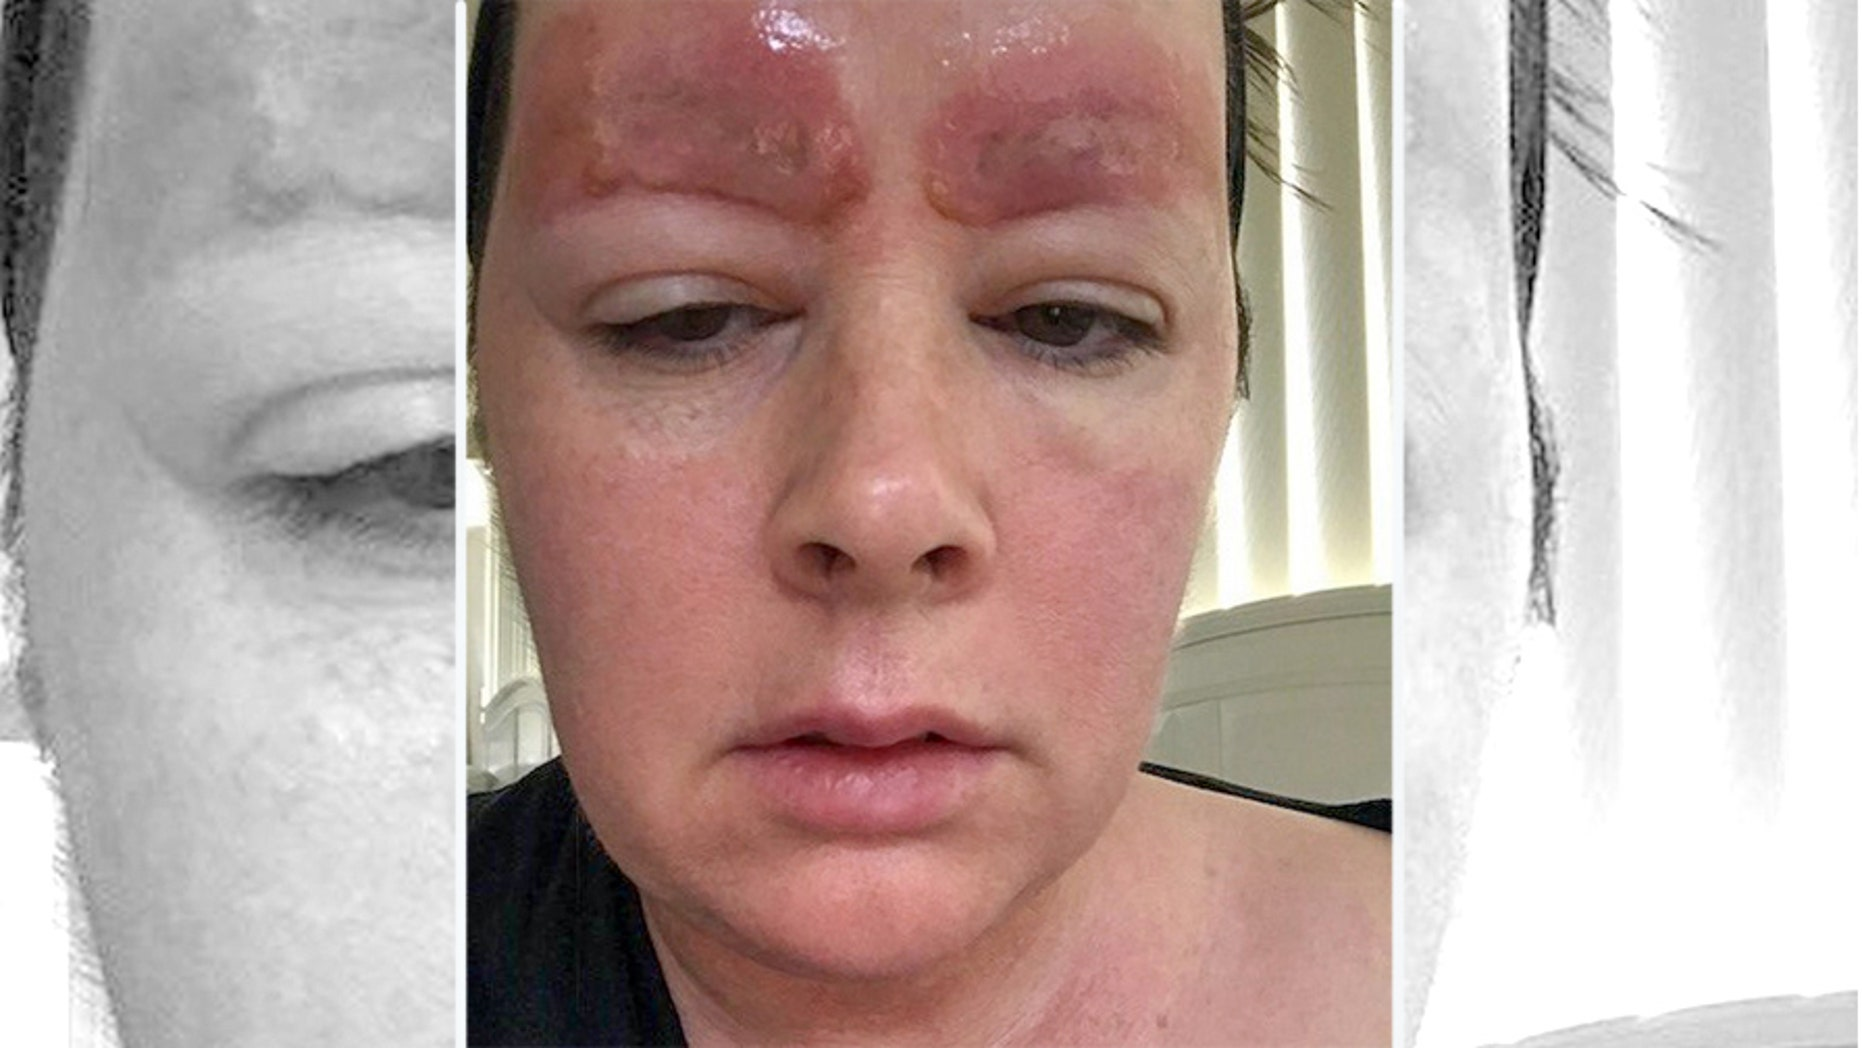 Woman Sued By Salon After Posting Photos Of Painful Reaction To